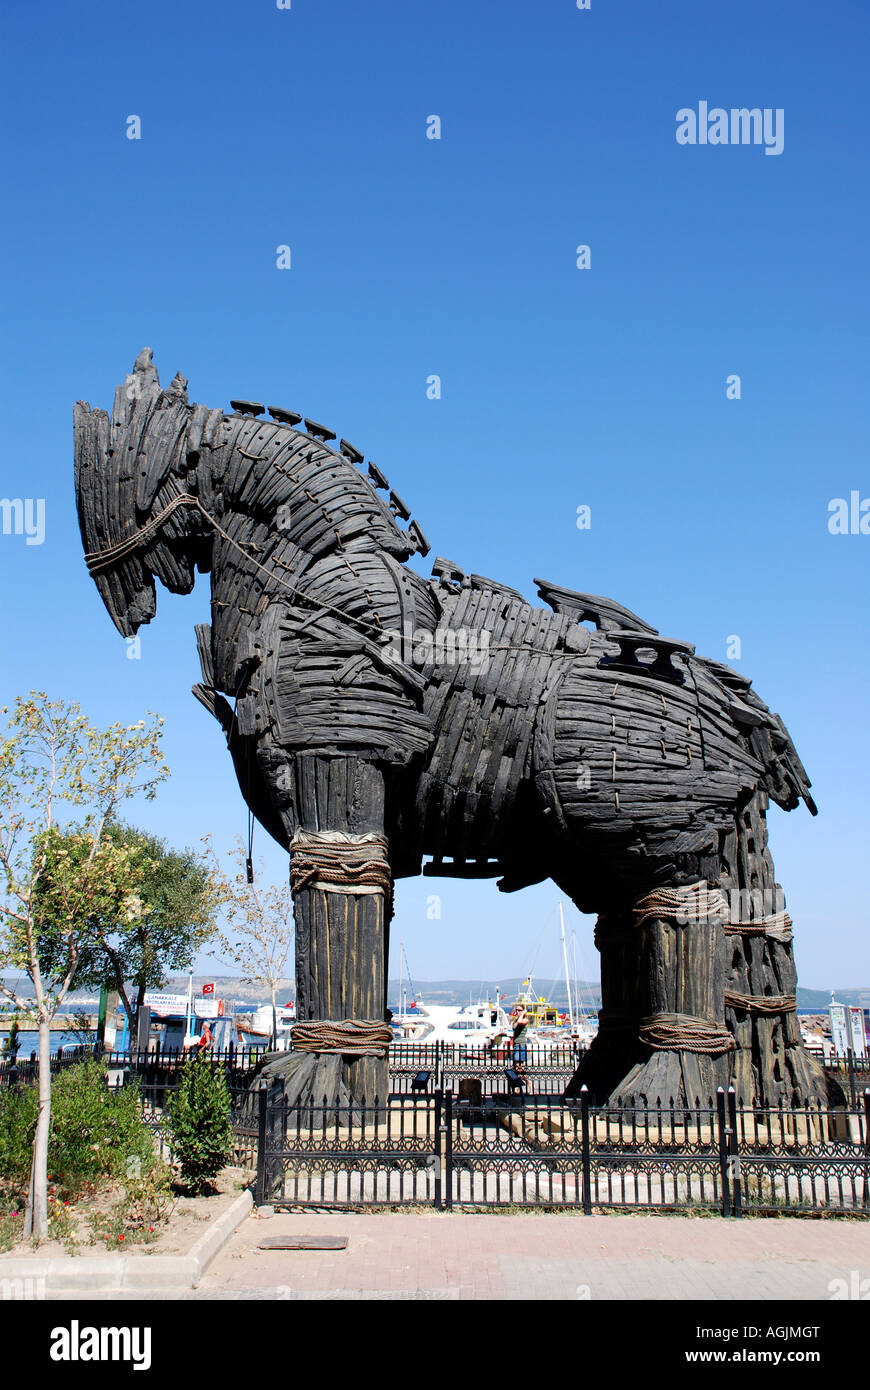 Wooden Trojan Horse Statue High Resolution Stock Photography And Images Alamy